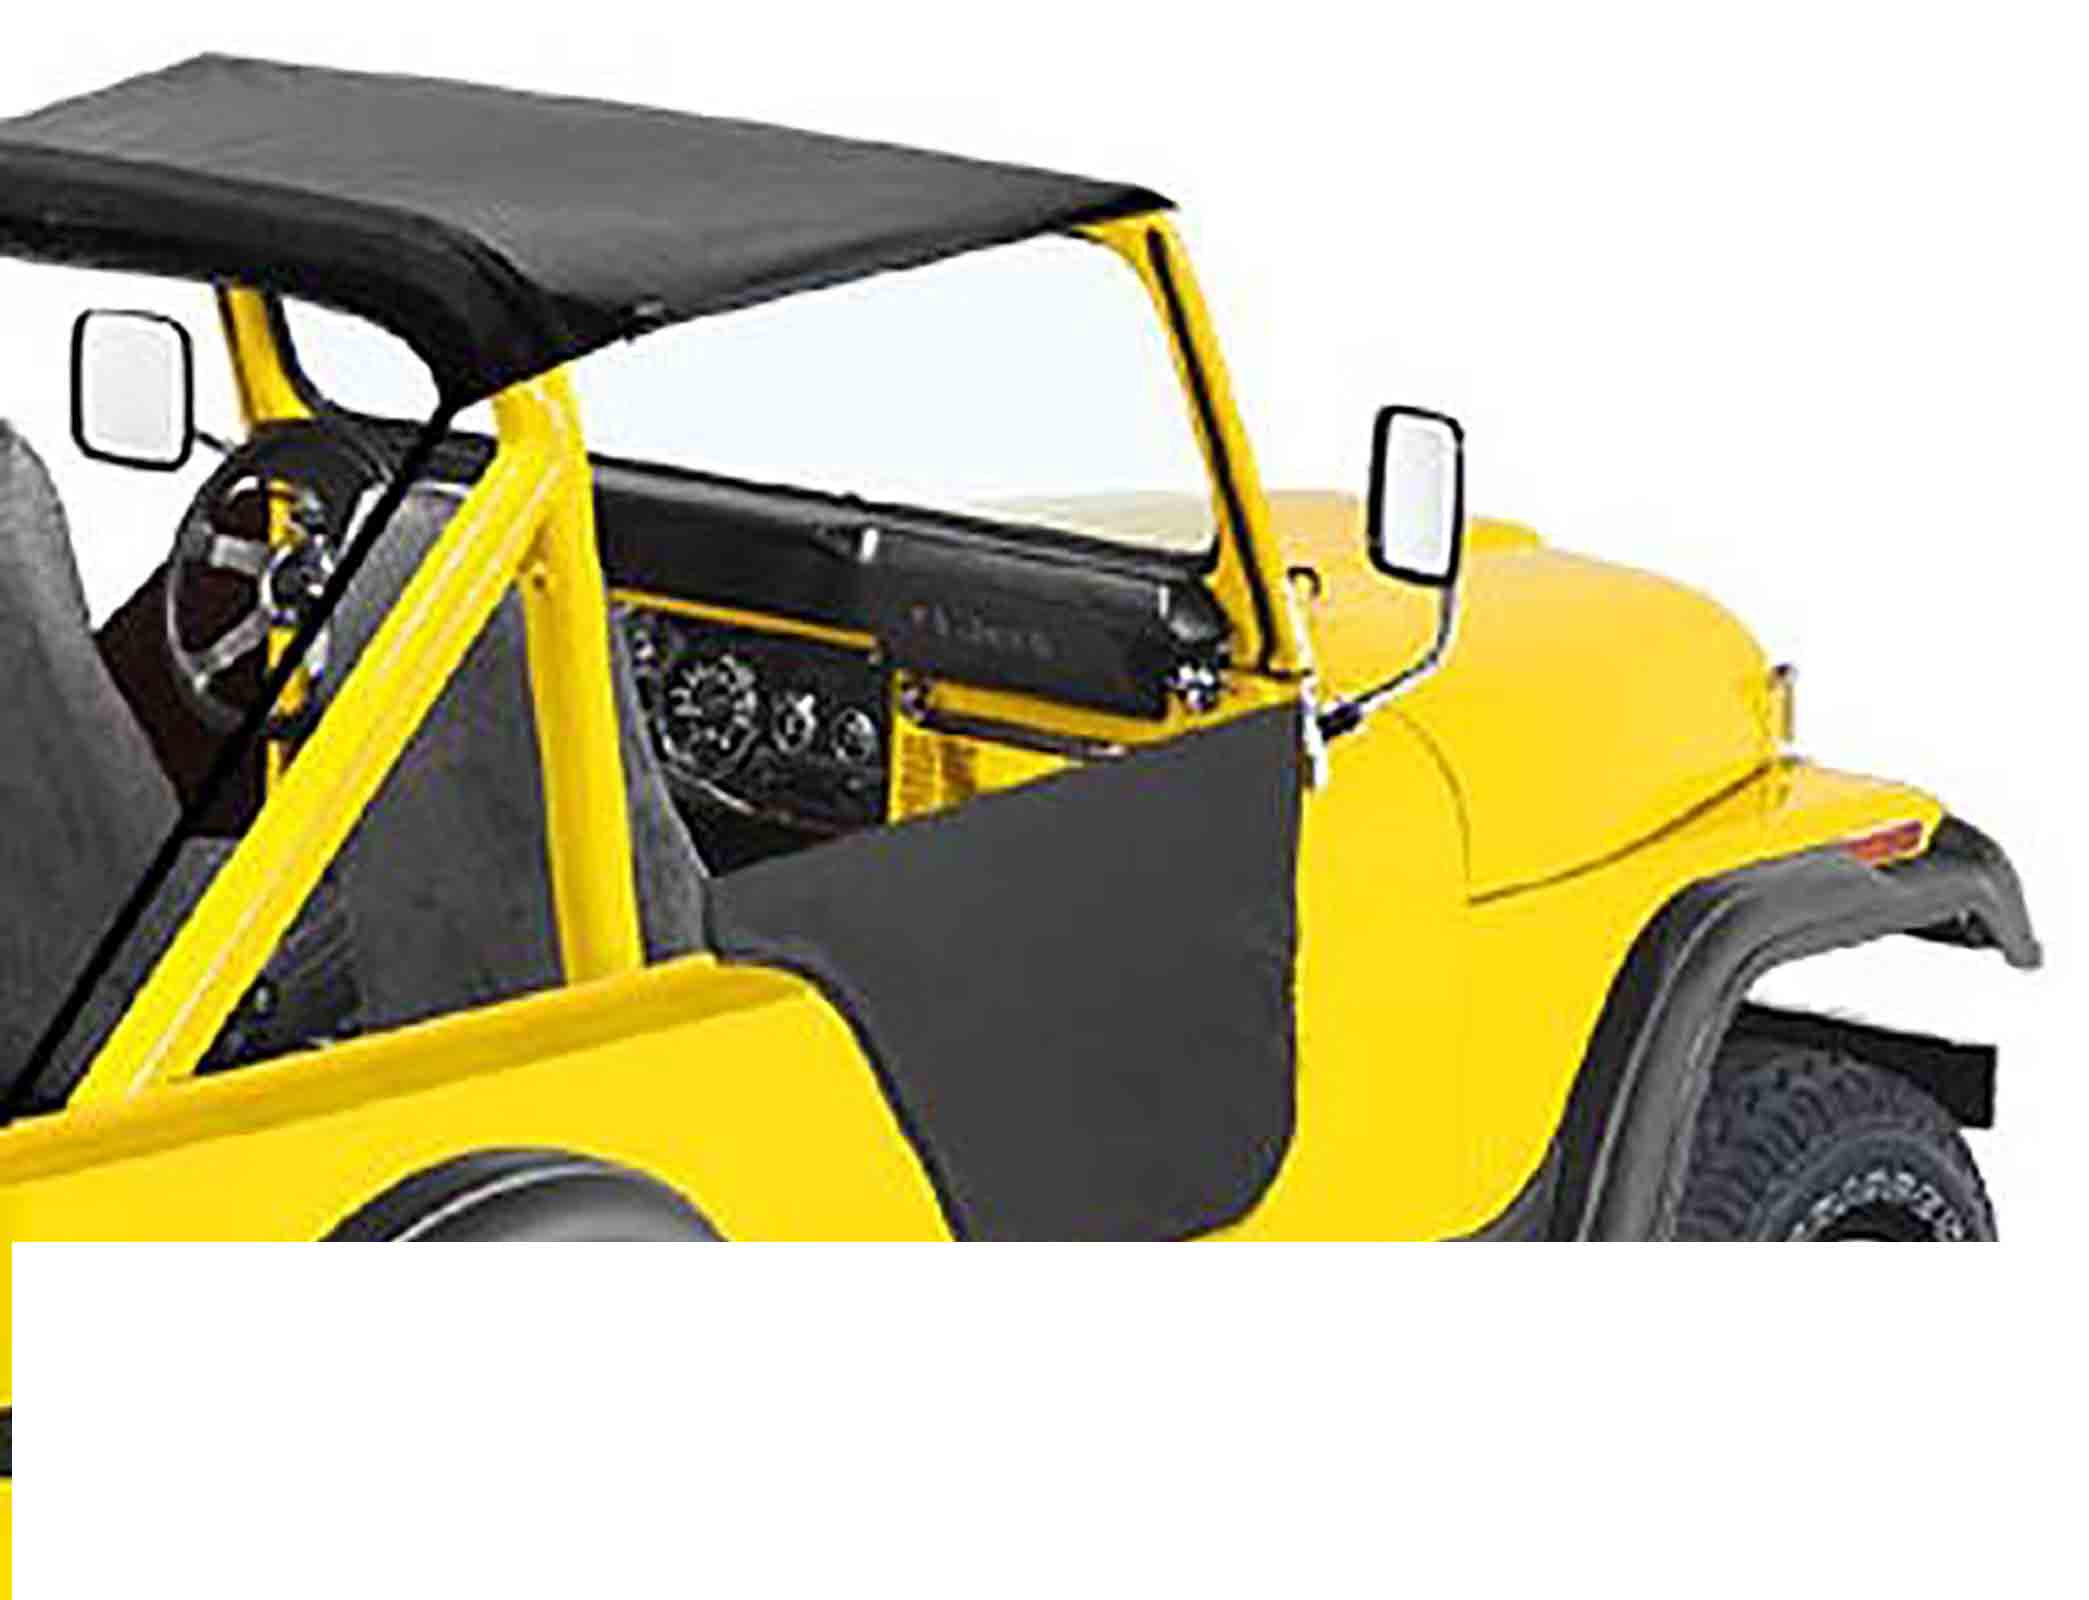 Mezzeporte jeep cj5 76 83 colori: black crush ricambi jeep